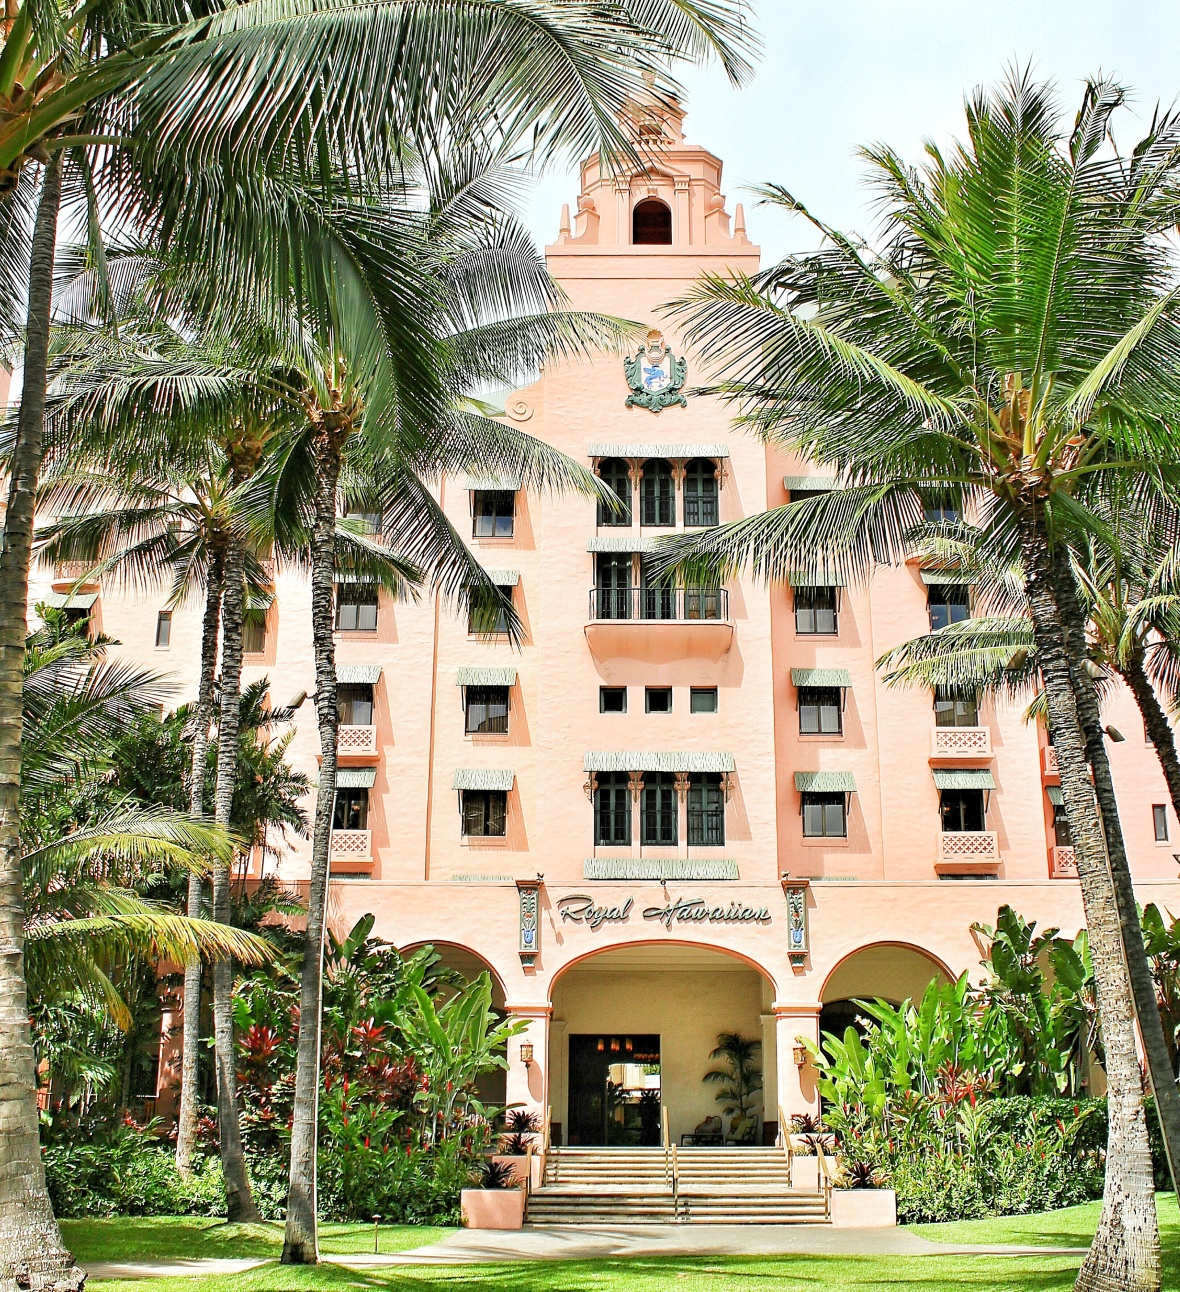 The Royal Hawaiian Hotel or The Pink Palace